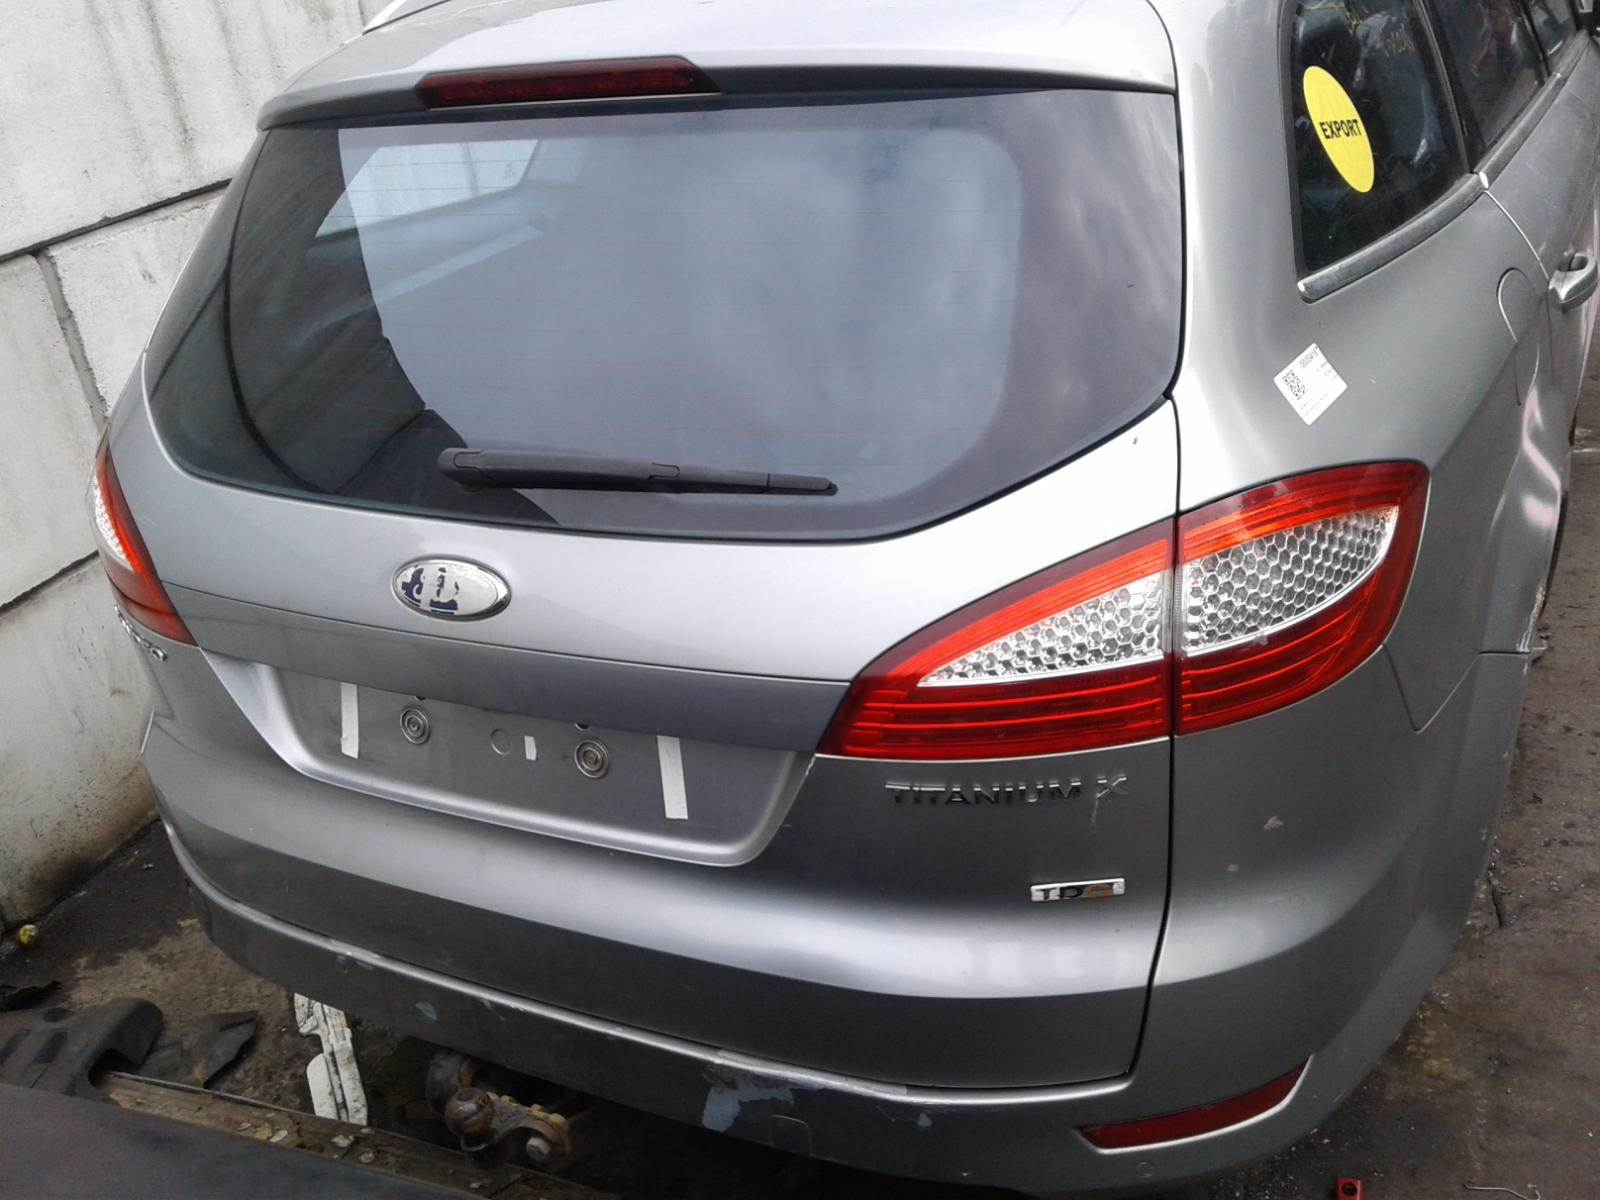 Image for a FORD MONDEO 2012 5 Door Estate